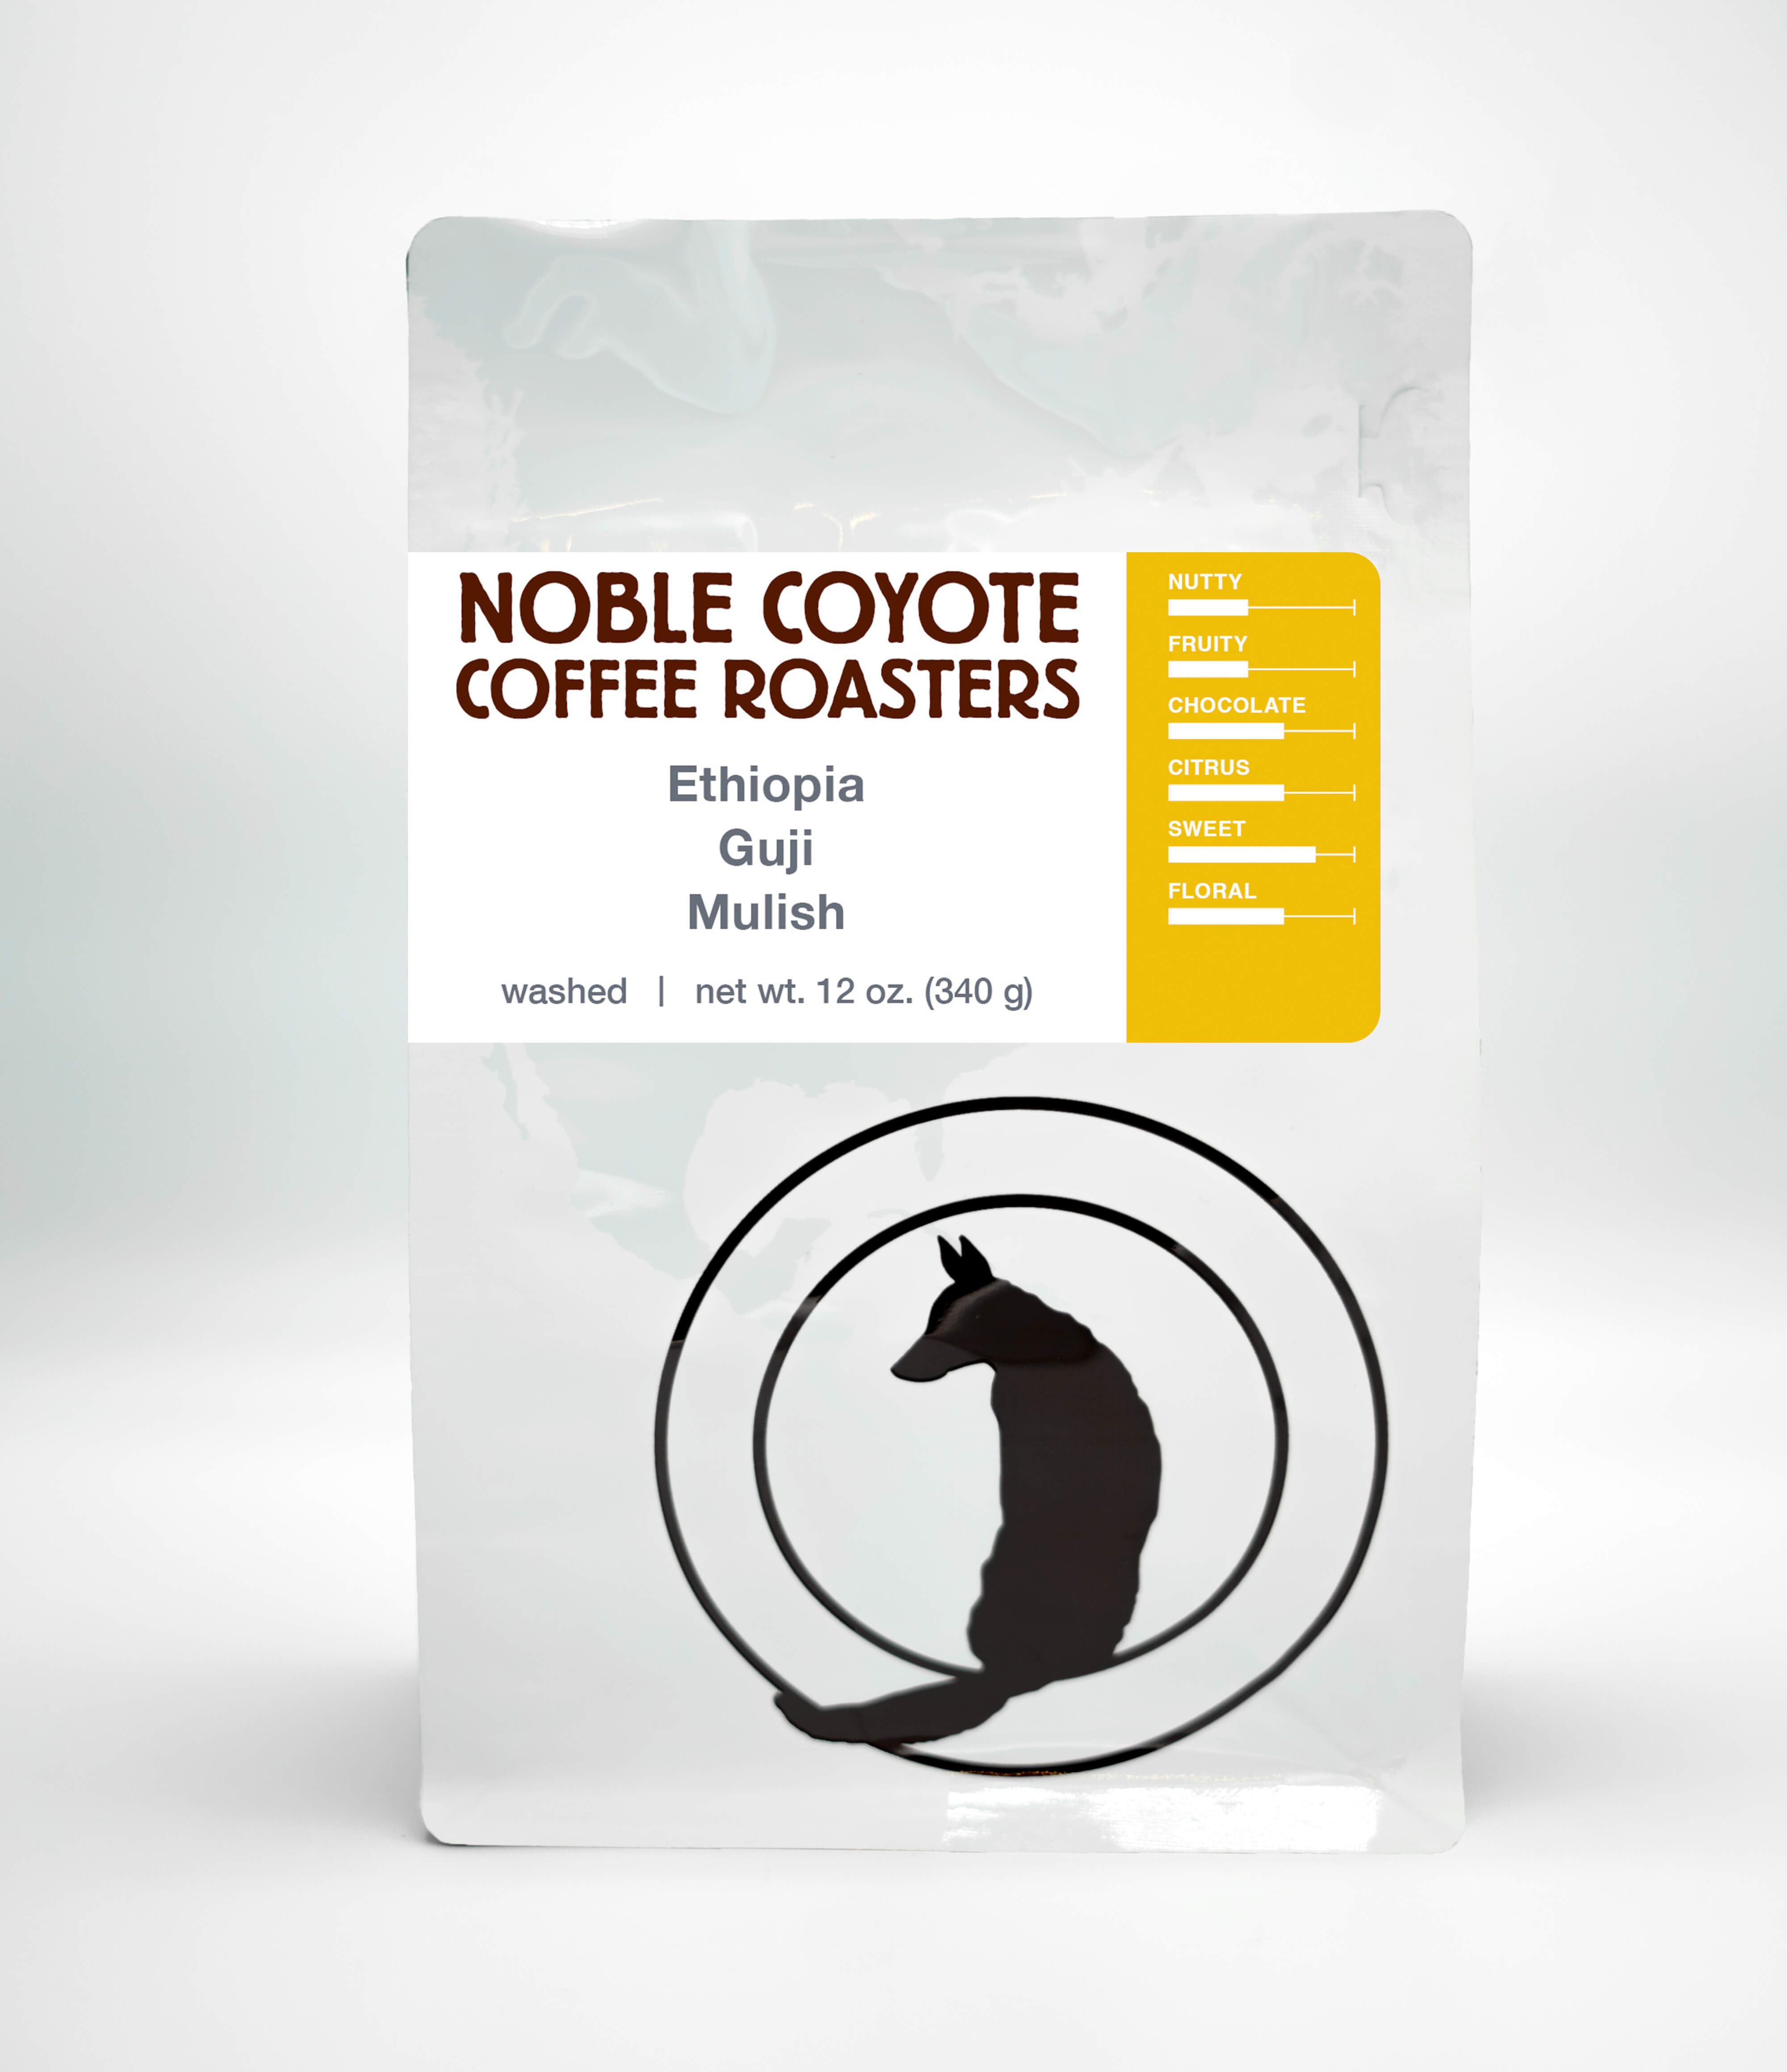 Ethiopia Mulish from Noble Coyote Coffee Roasters